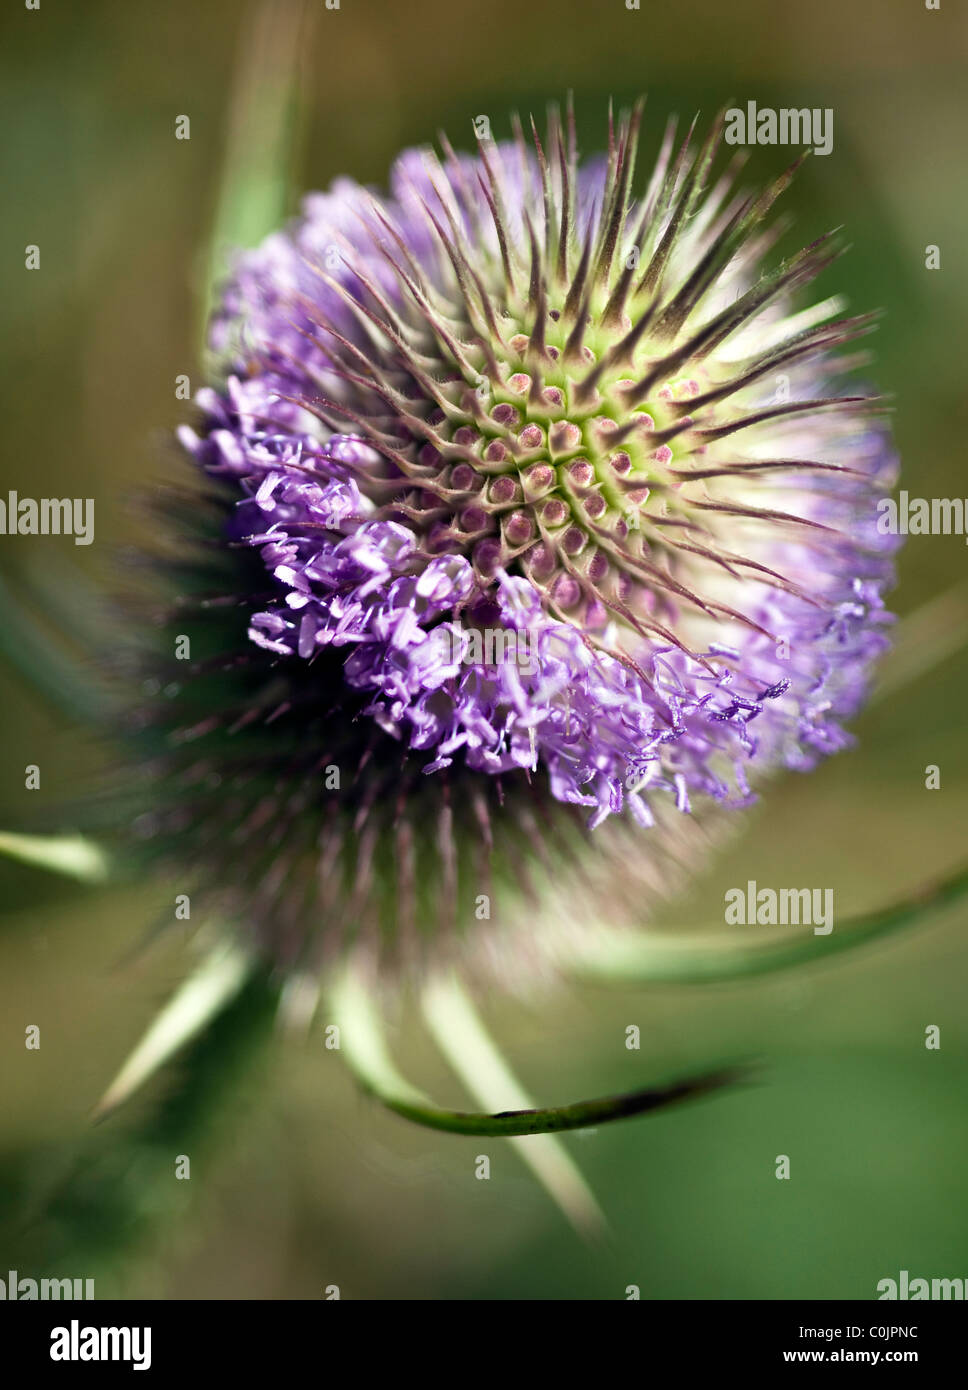 Macro image  of mauve thistle head  on location shot with shallow depth of field - Stock Image